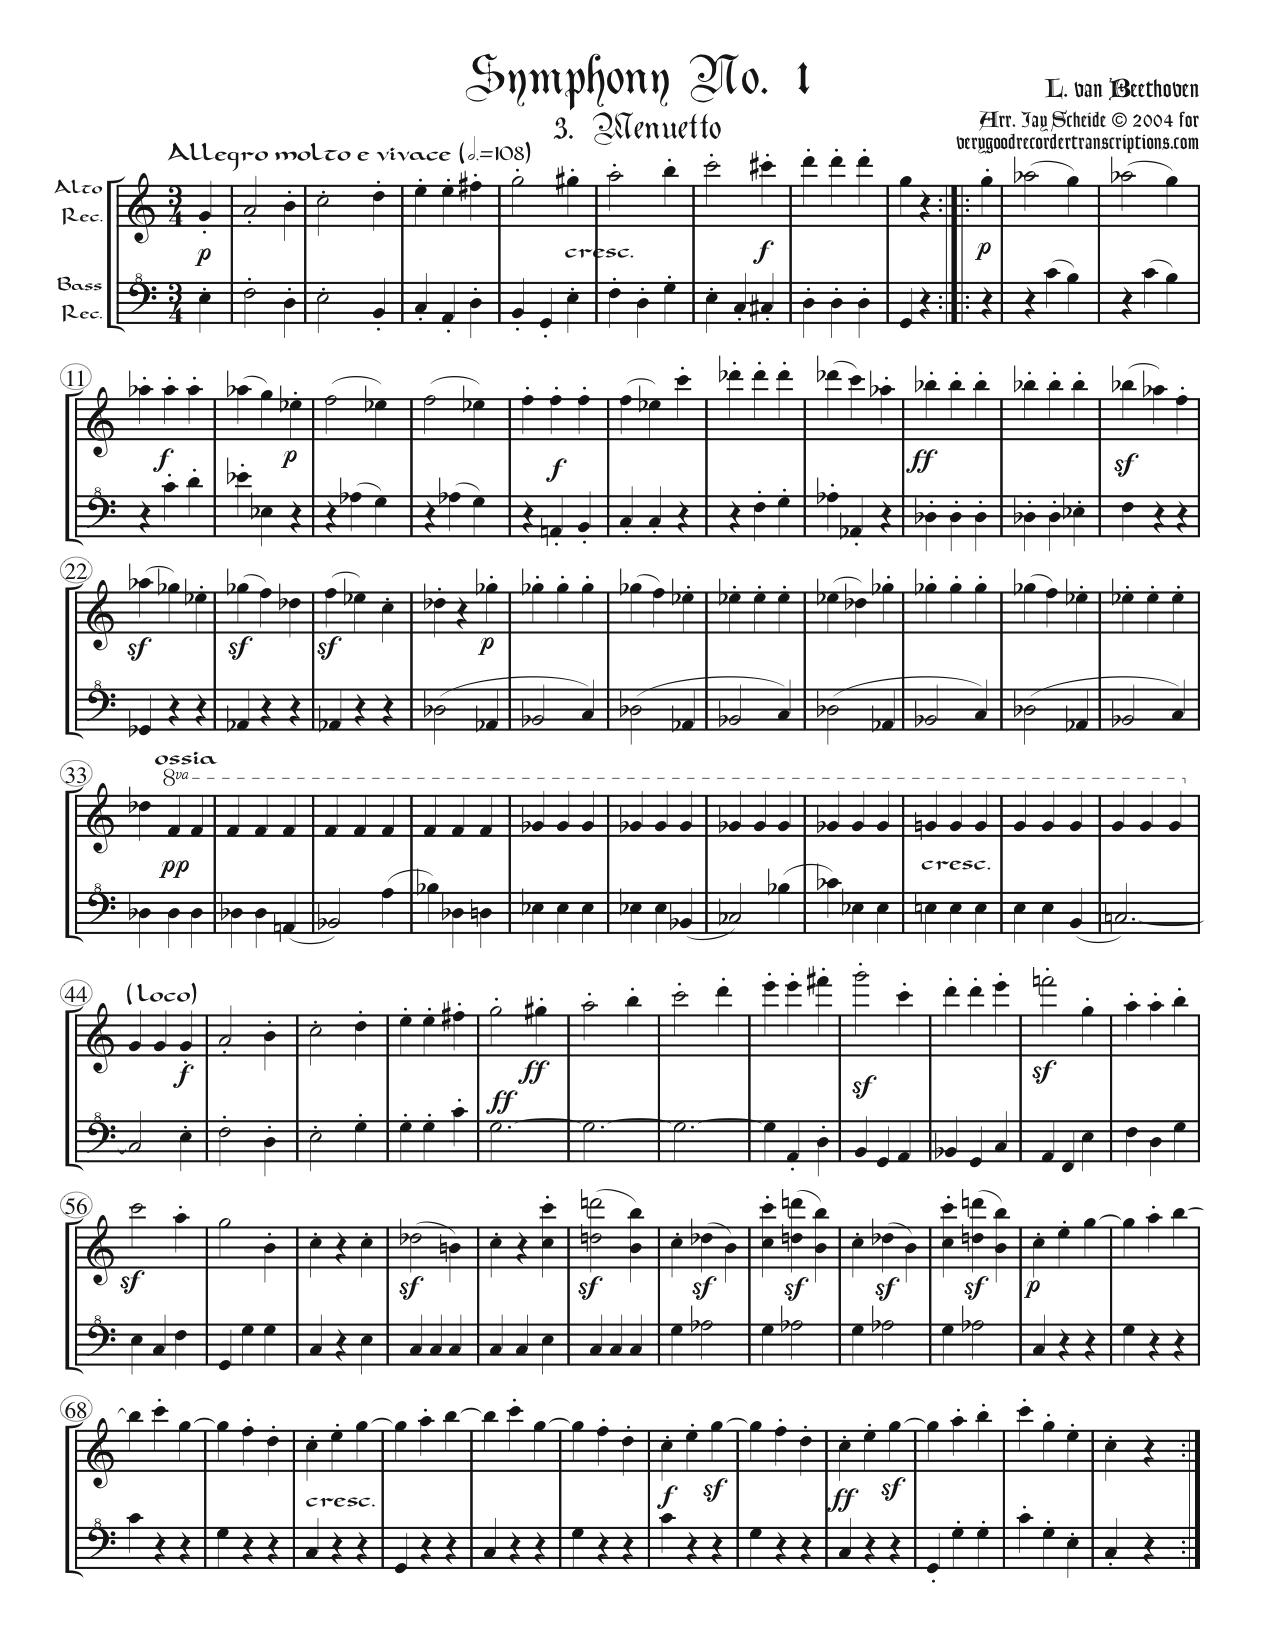 Menuetto from Symphony No. 1, arr. for alto & bass recorders